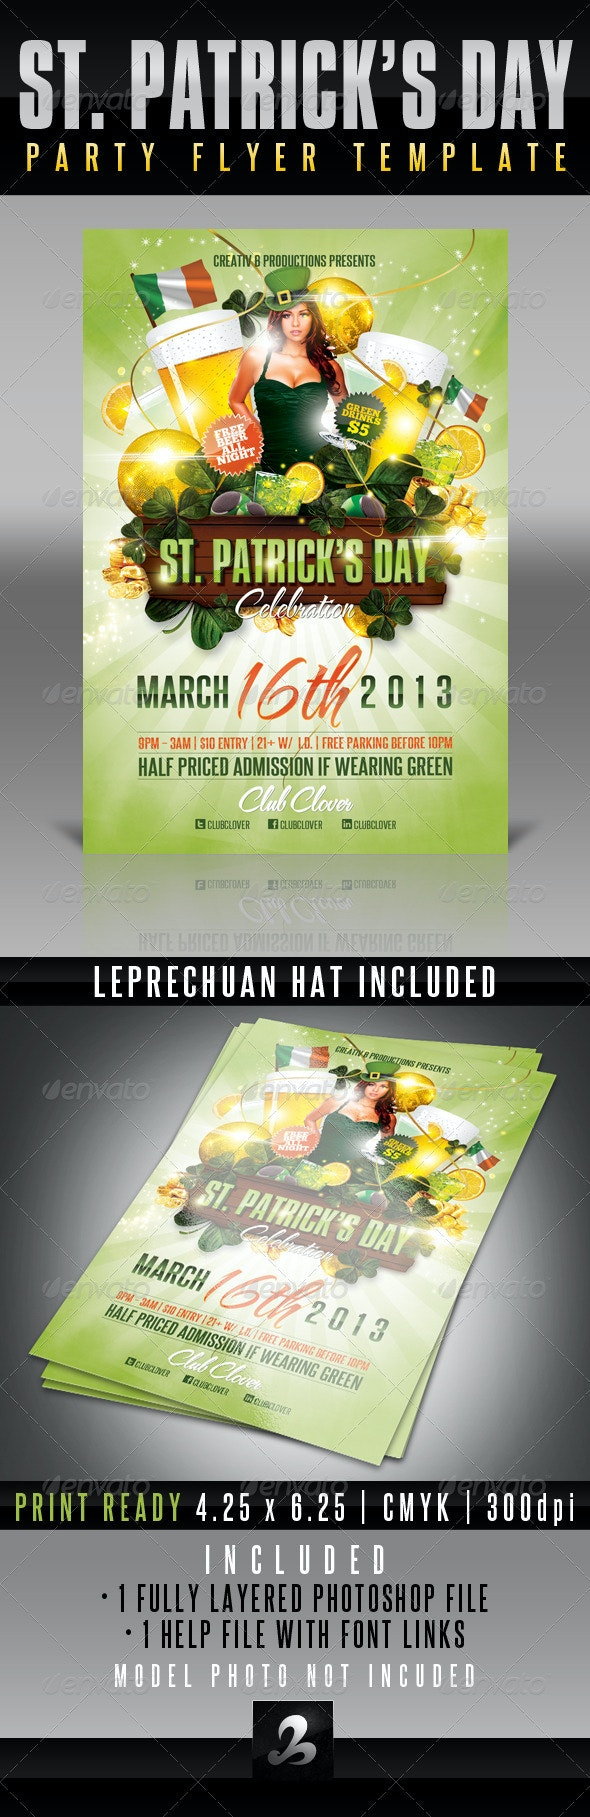 St. Patrick's Day Party Flyer Template 3 - Holidays Events